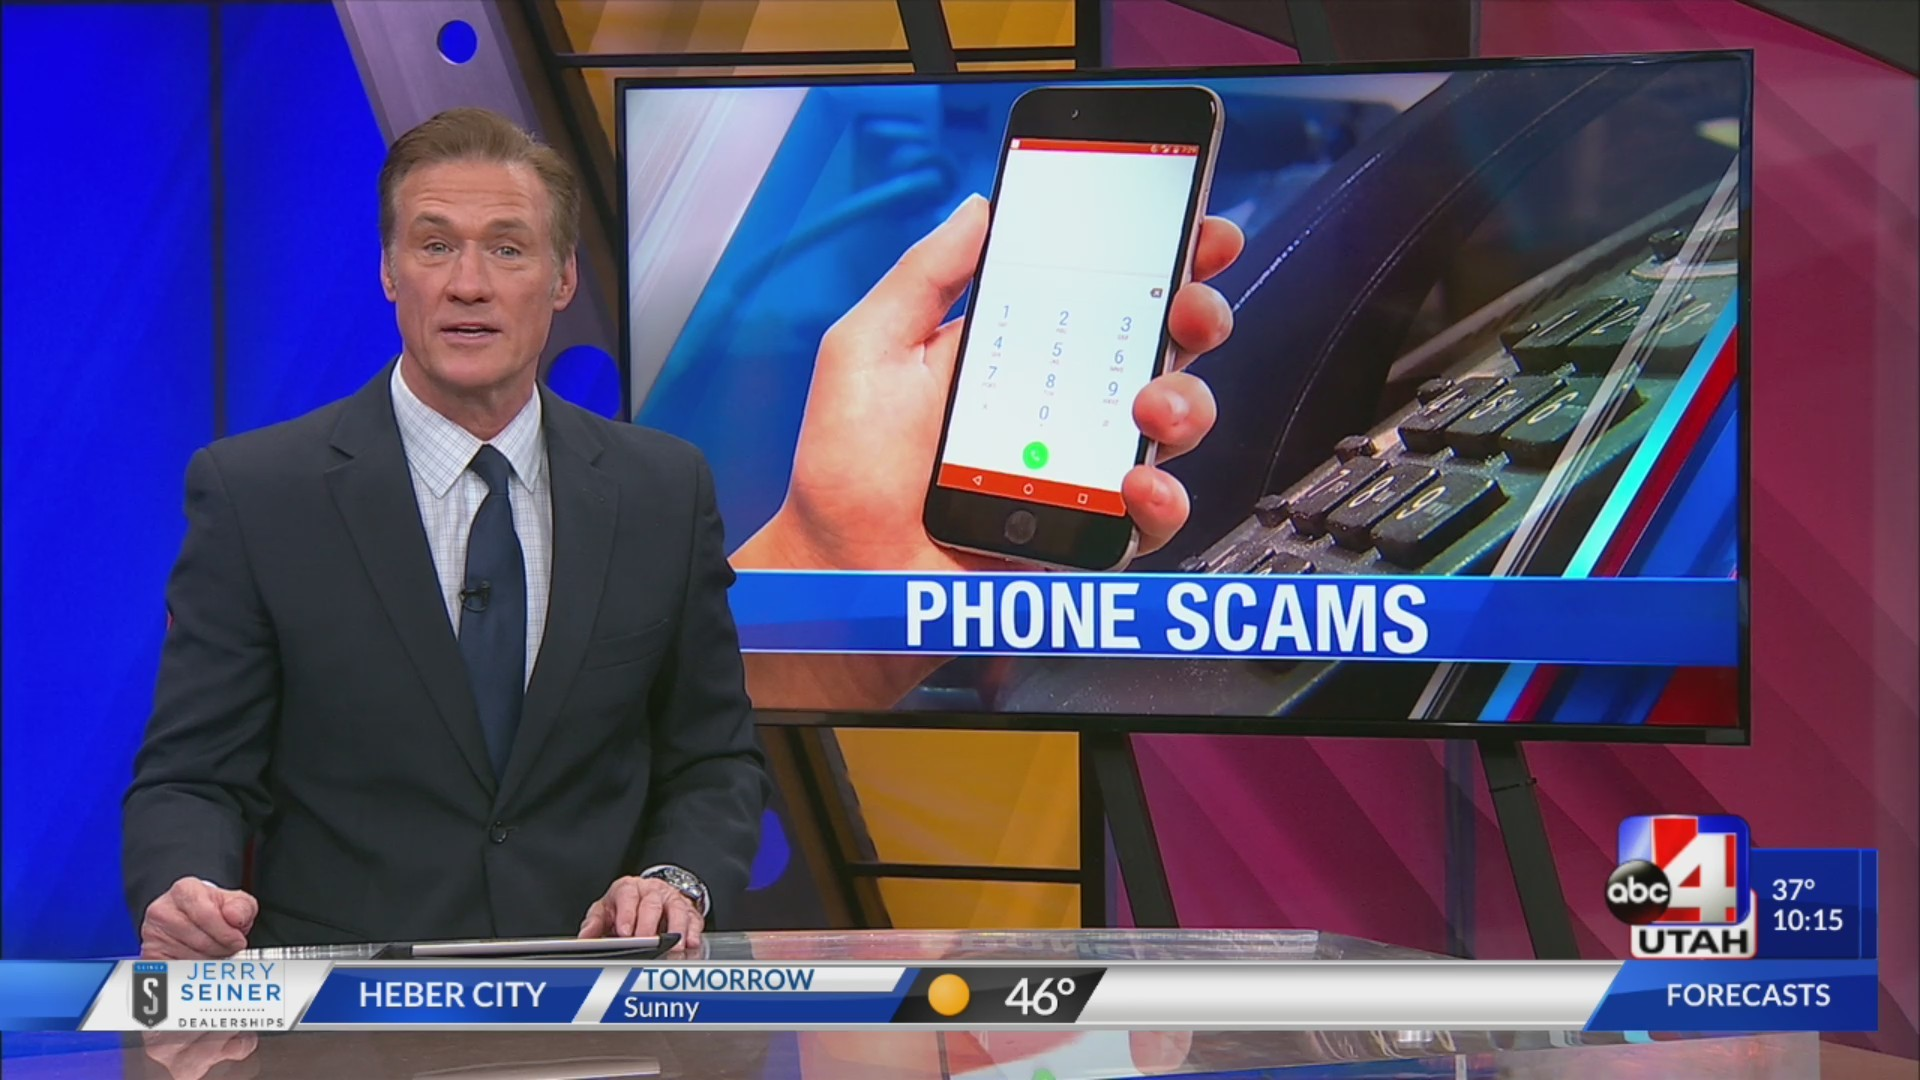 Anatomy of a phone scam: this week's scammer makes mistakes